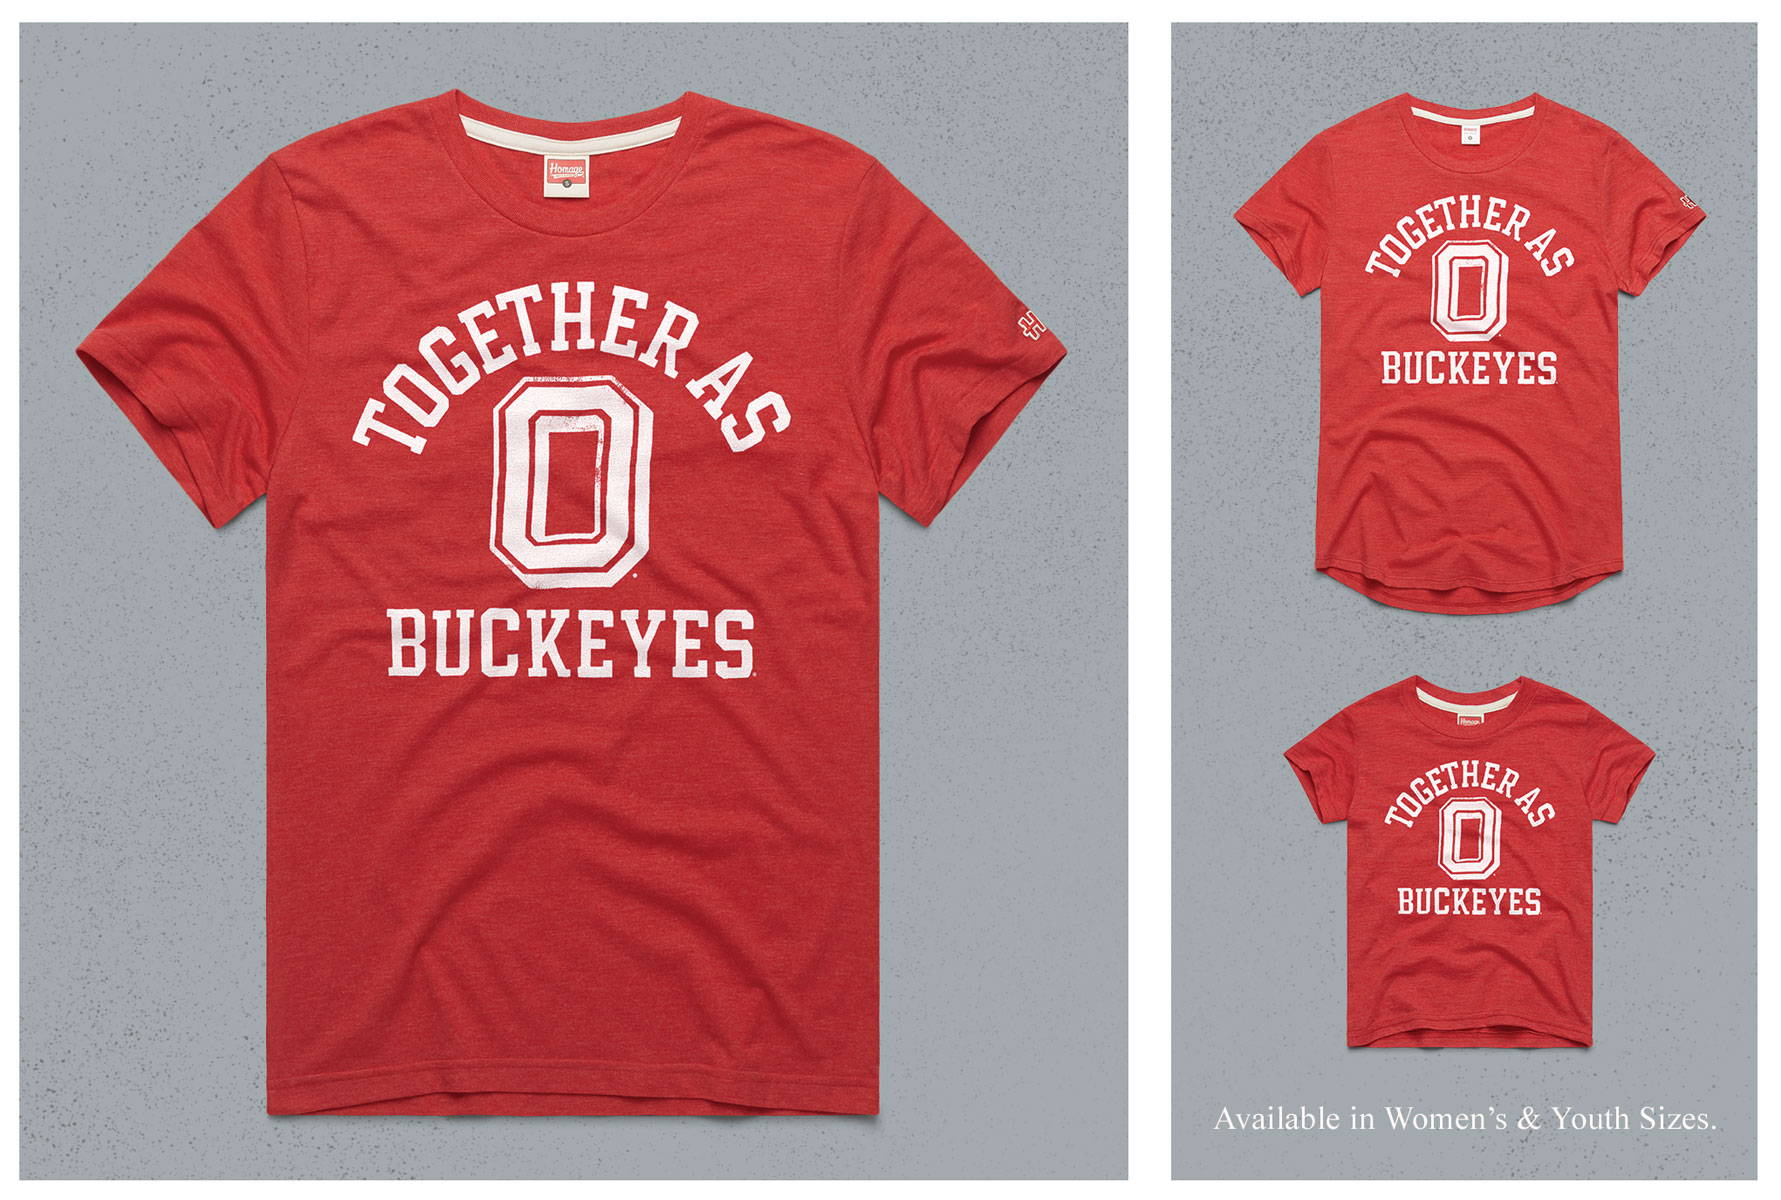 HOMAGE x OSU Together As Buckeyes collection.